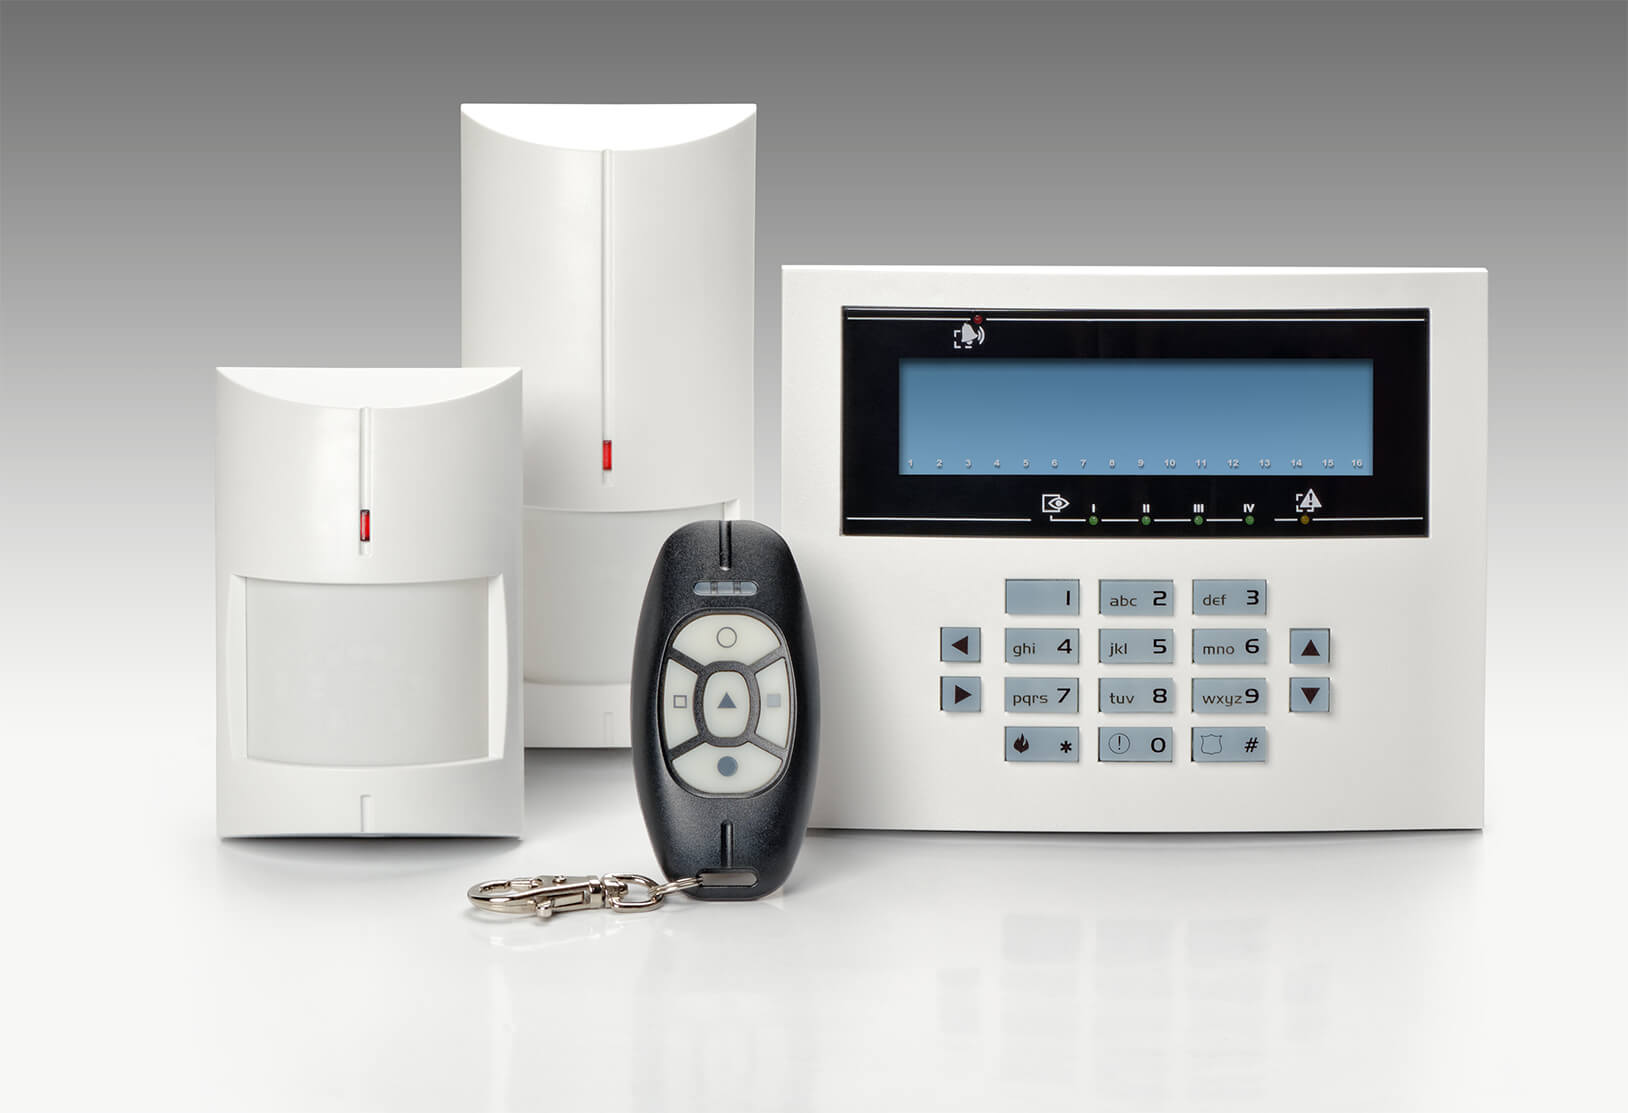 Business & Residential NACOSS Approved Burglar Alarms In Collier's Wood SW19 - Local Collier's Wood SW19 security company.Call 02078872244 - Dedicated to Safety & Security. Companies, shops and homes ..